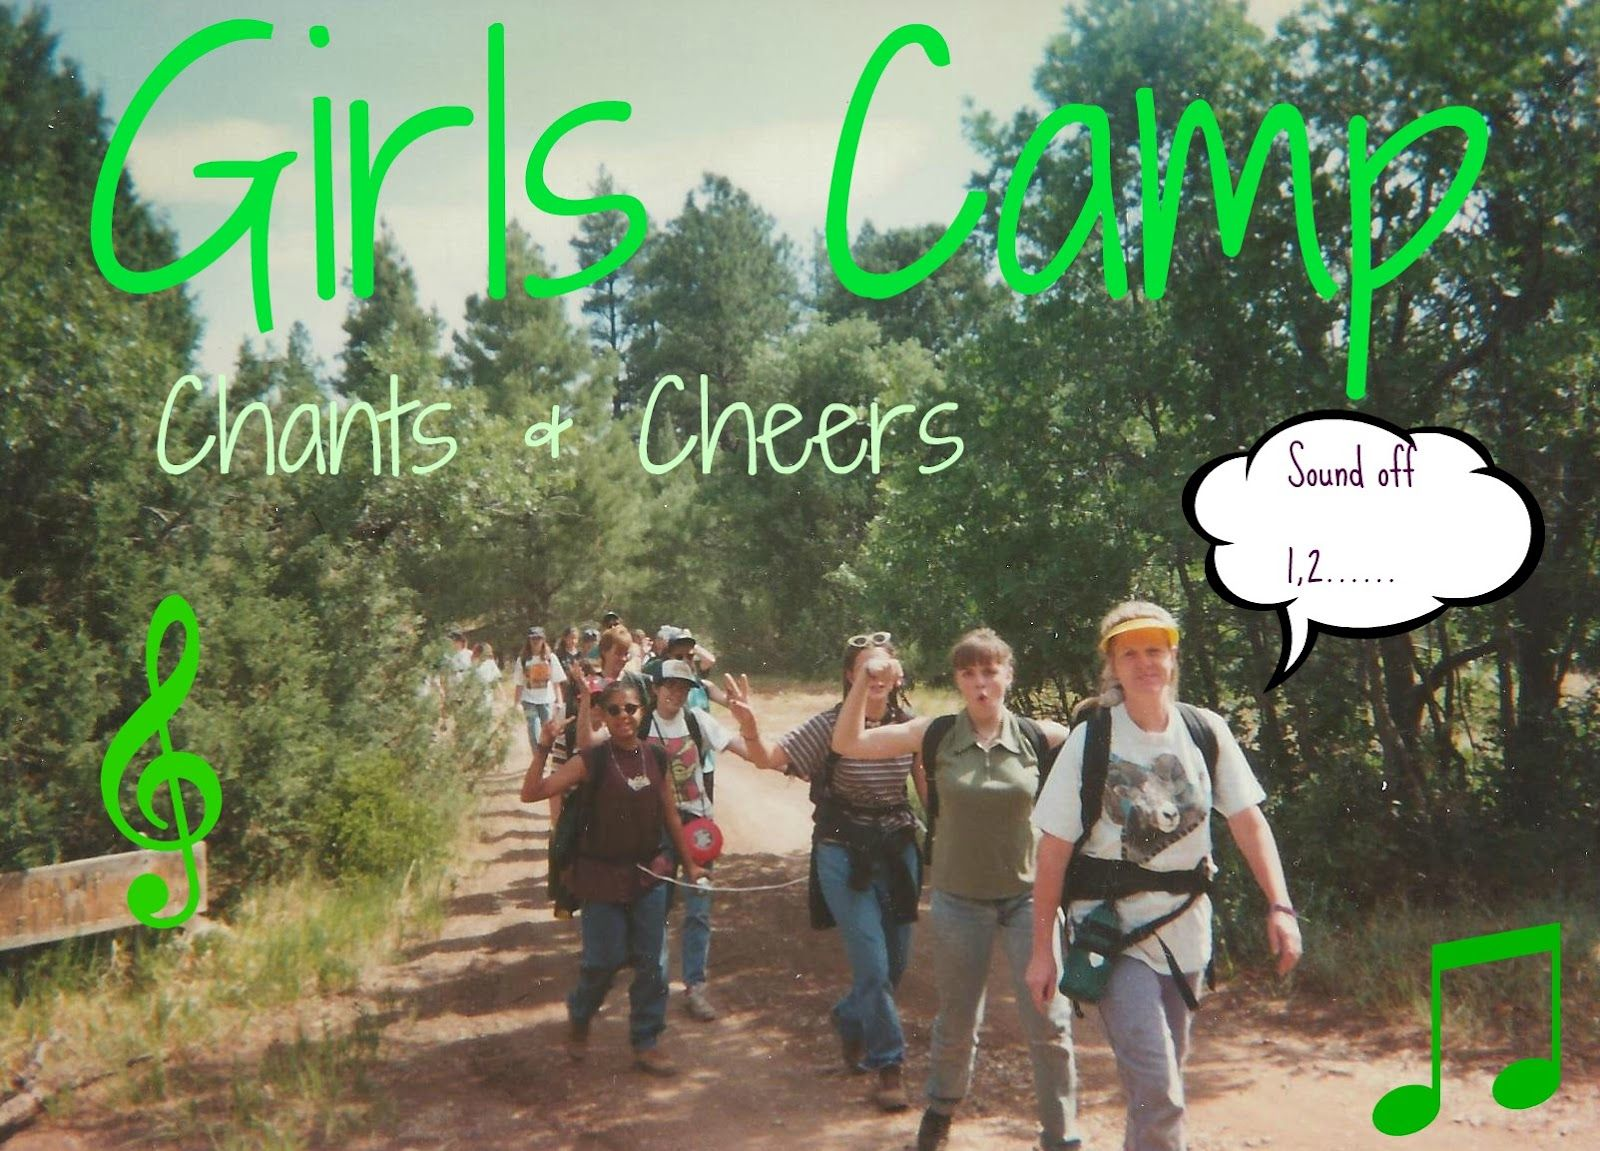 Some Sweet Talking Girl, LDS, Girls Camp, Cheer ideas and